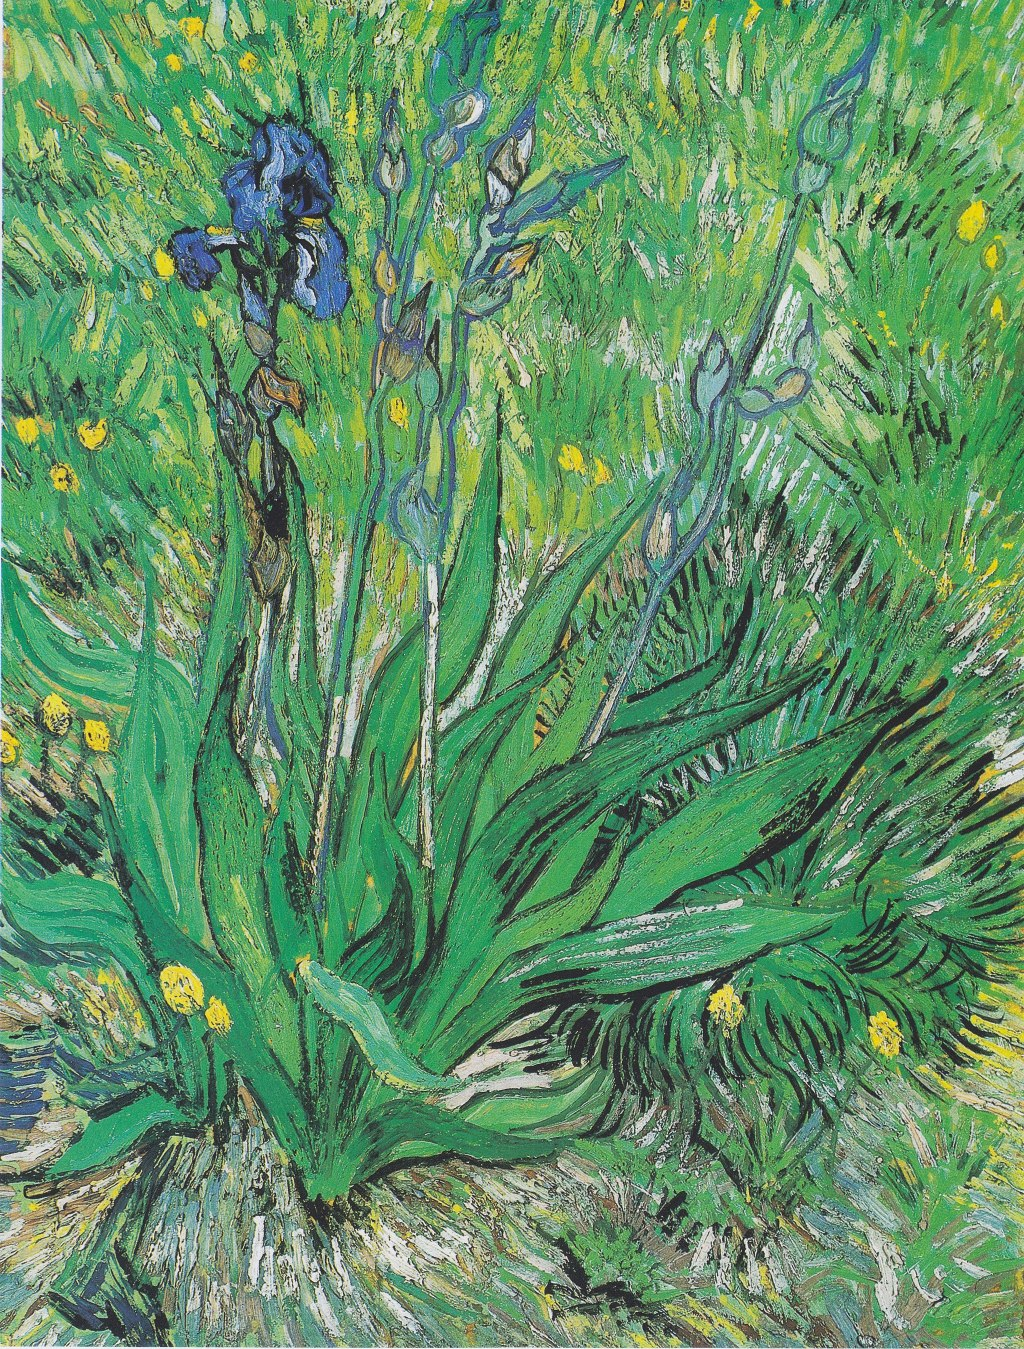 Vincent van Gogh, 'Iris,' 1890, oil on thinned cardboard, mounted on canvas.